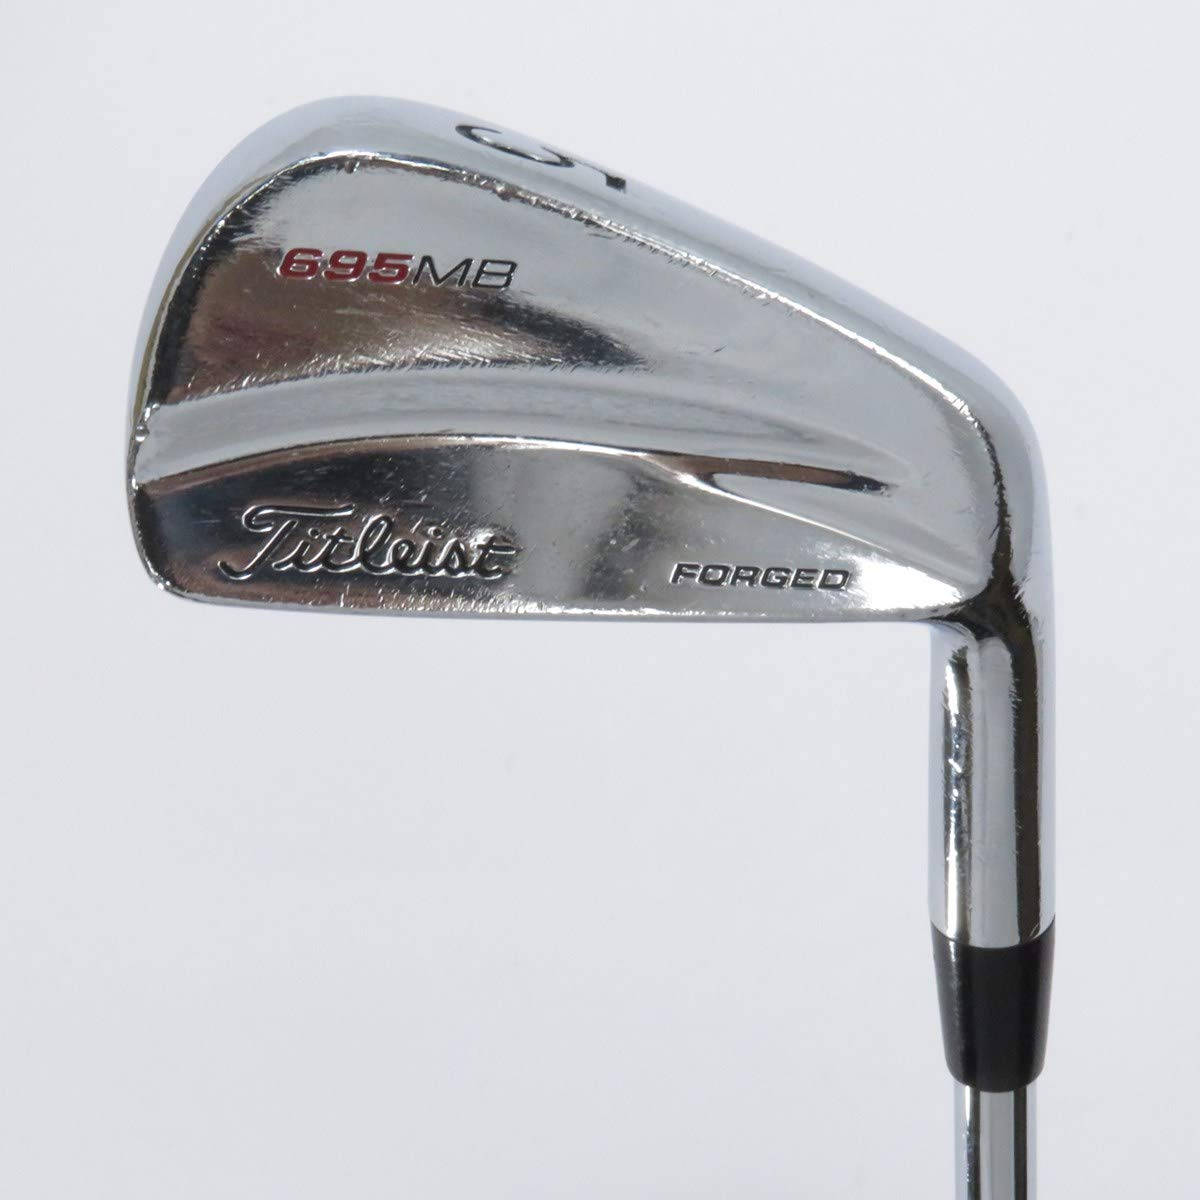 【中古】タイトリスト TITLEIST 695MB FORGED アイアン Dynamic Gold B07MZVRZ4N  S300